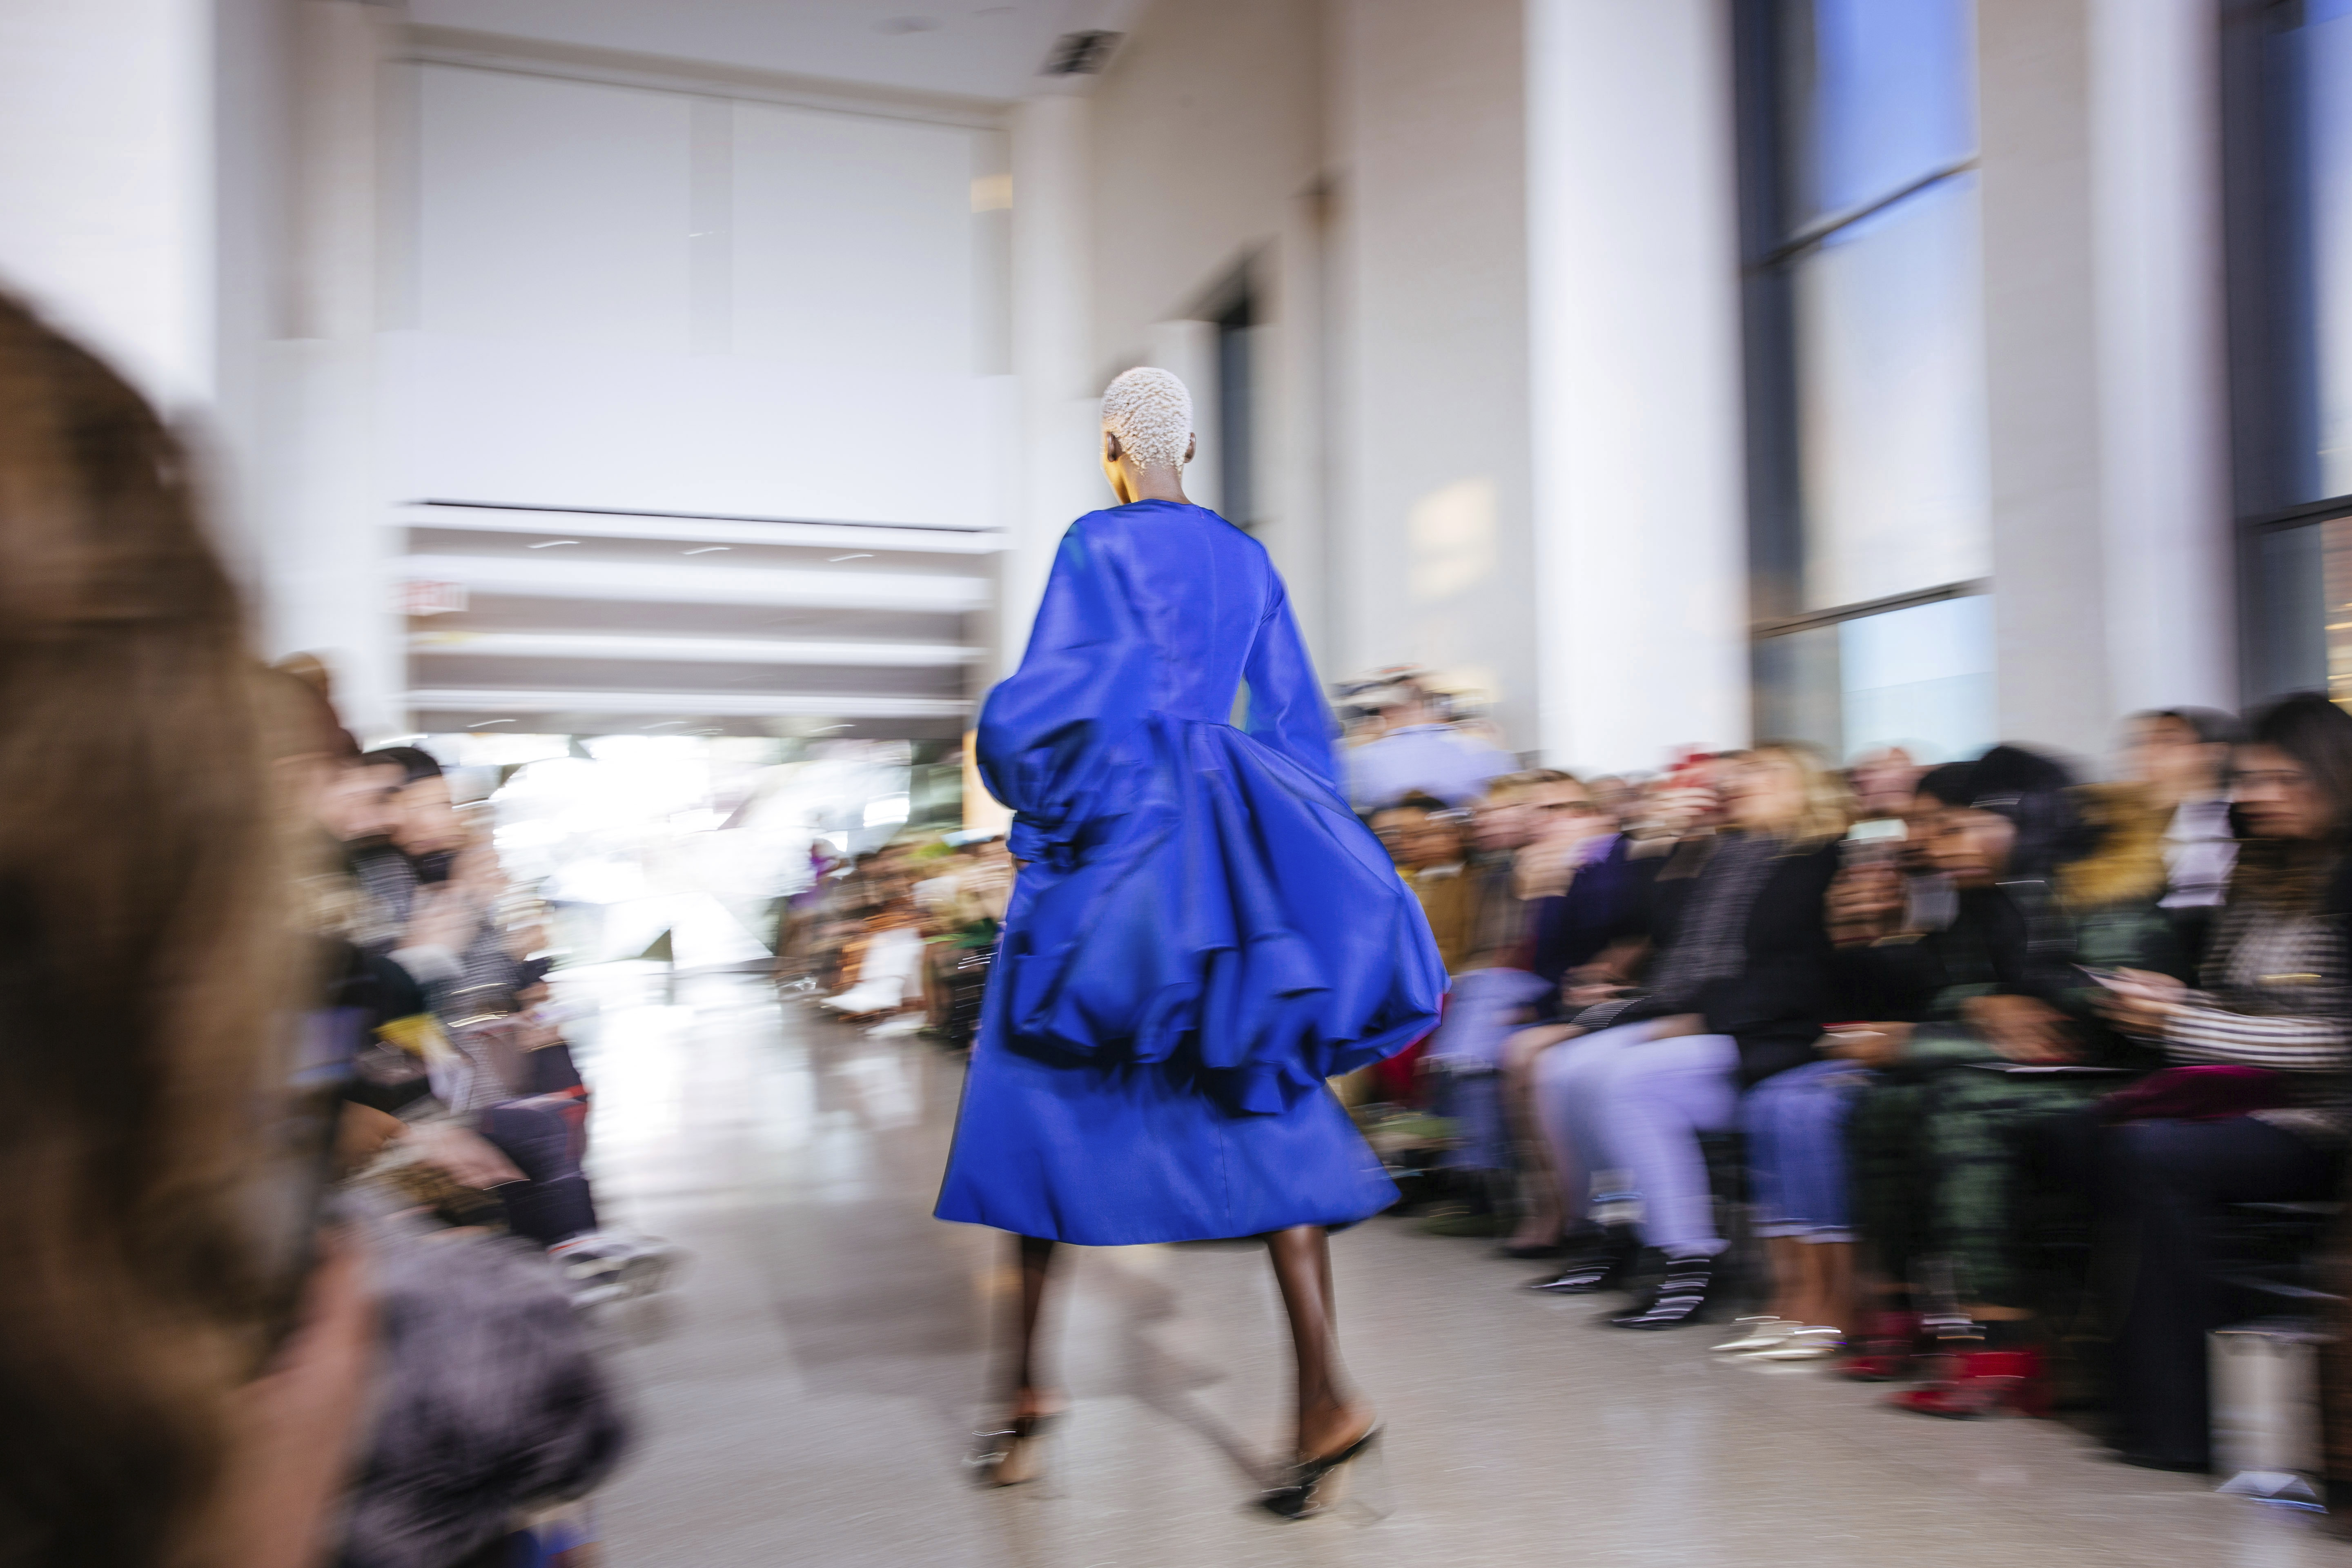 A bright blue dress stands in focus on the runway